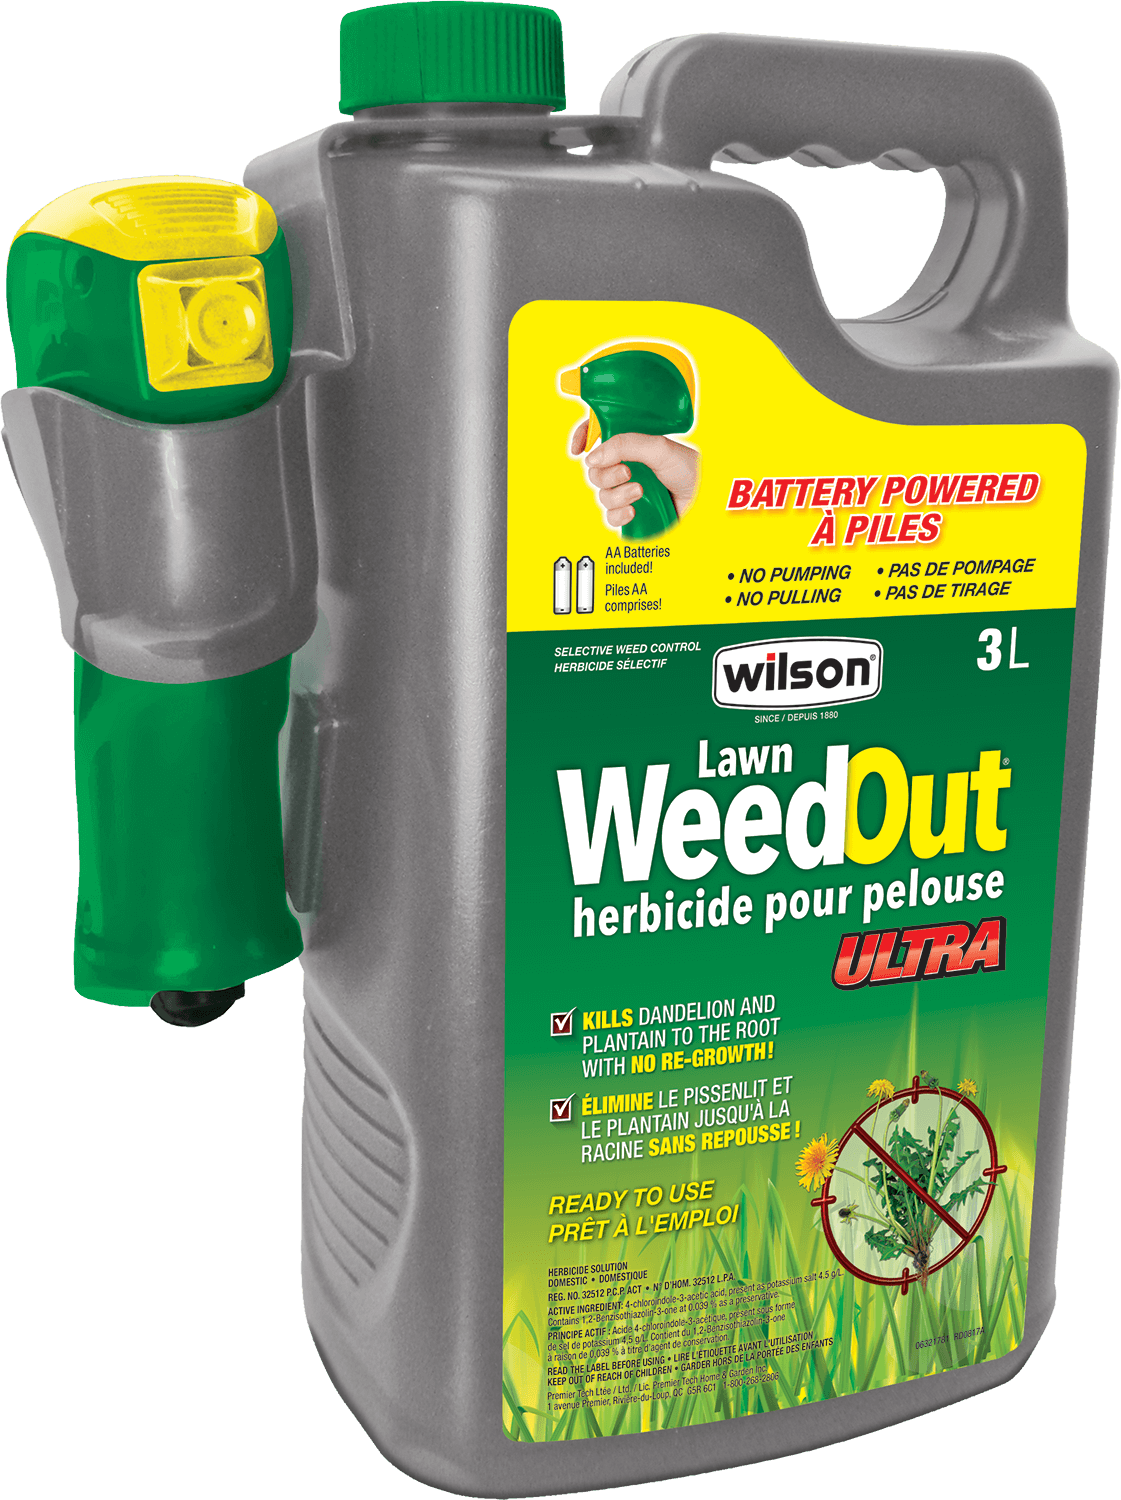 Wilson Lawn WeedOut 3L Ready To USe